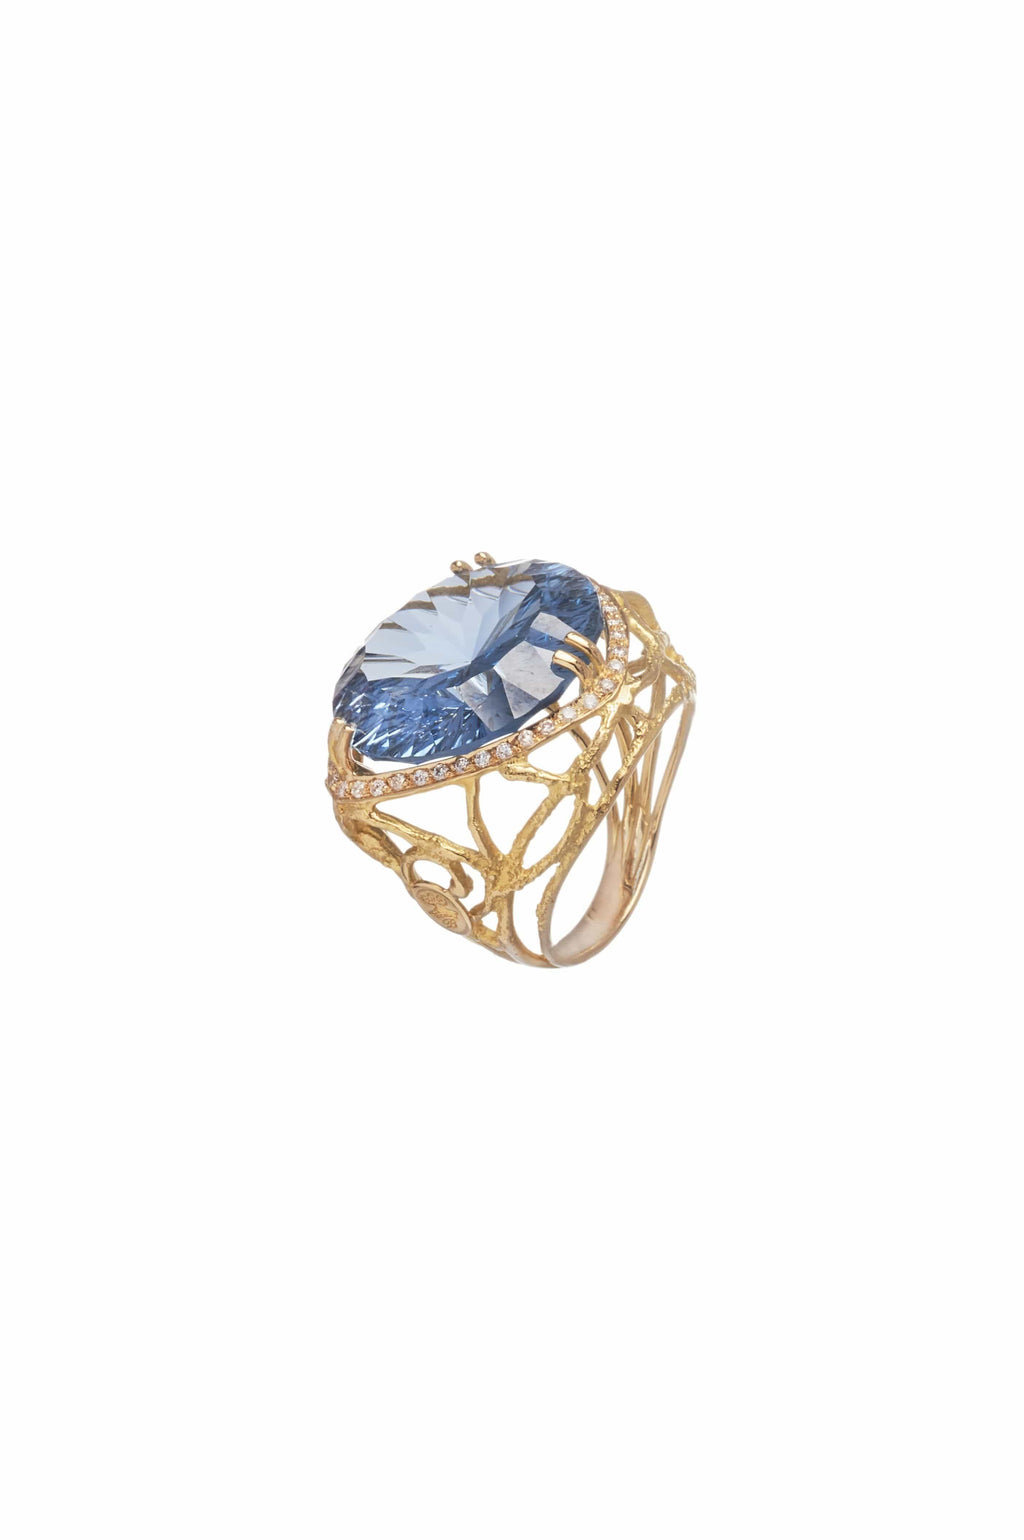 Topaz Cocktail Ring - BYTRIBUTE